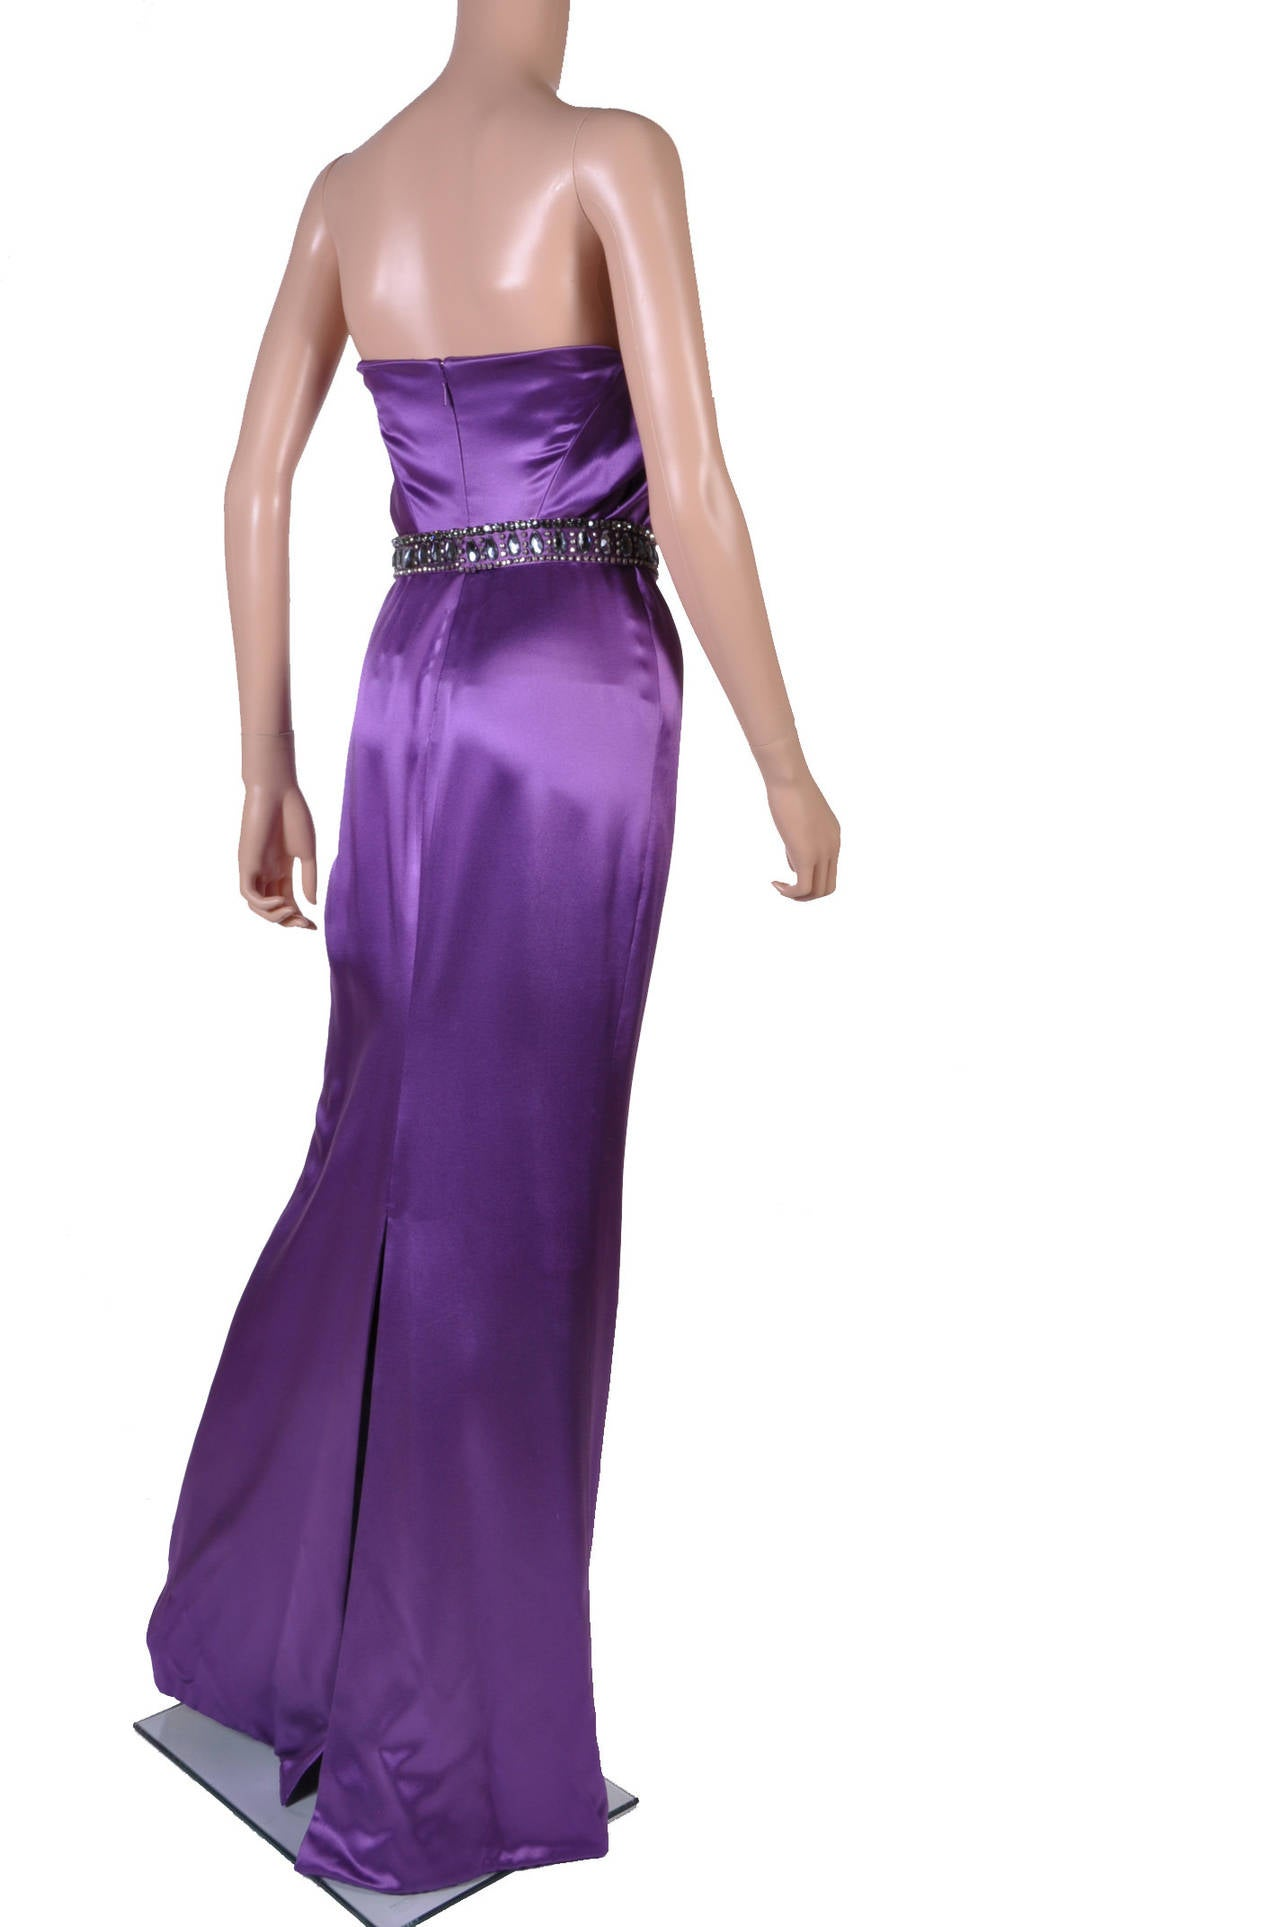 New VERSACE EMBELLISHED PURPLE AMETHYST STRAPLESS GOWN 4